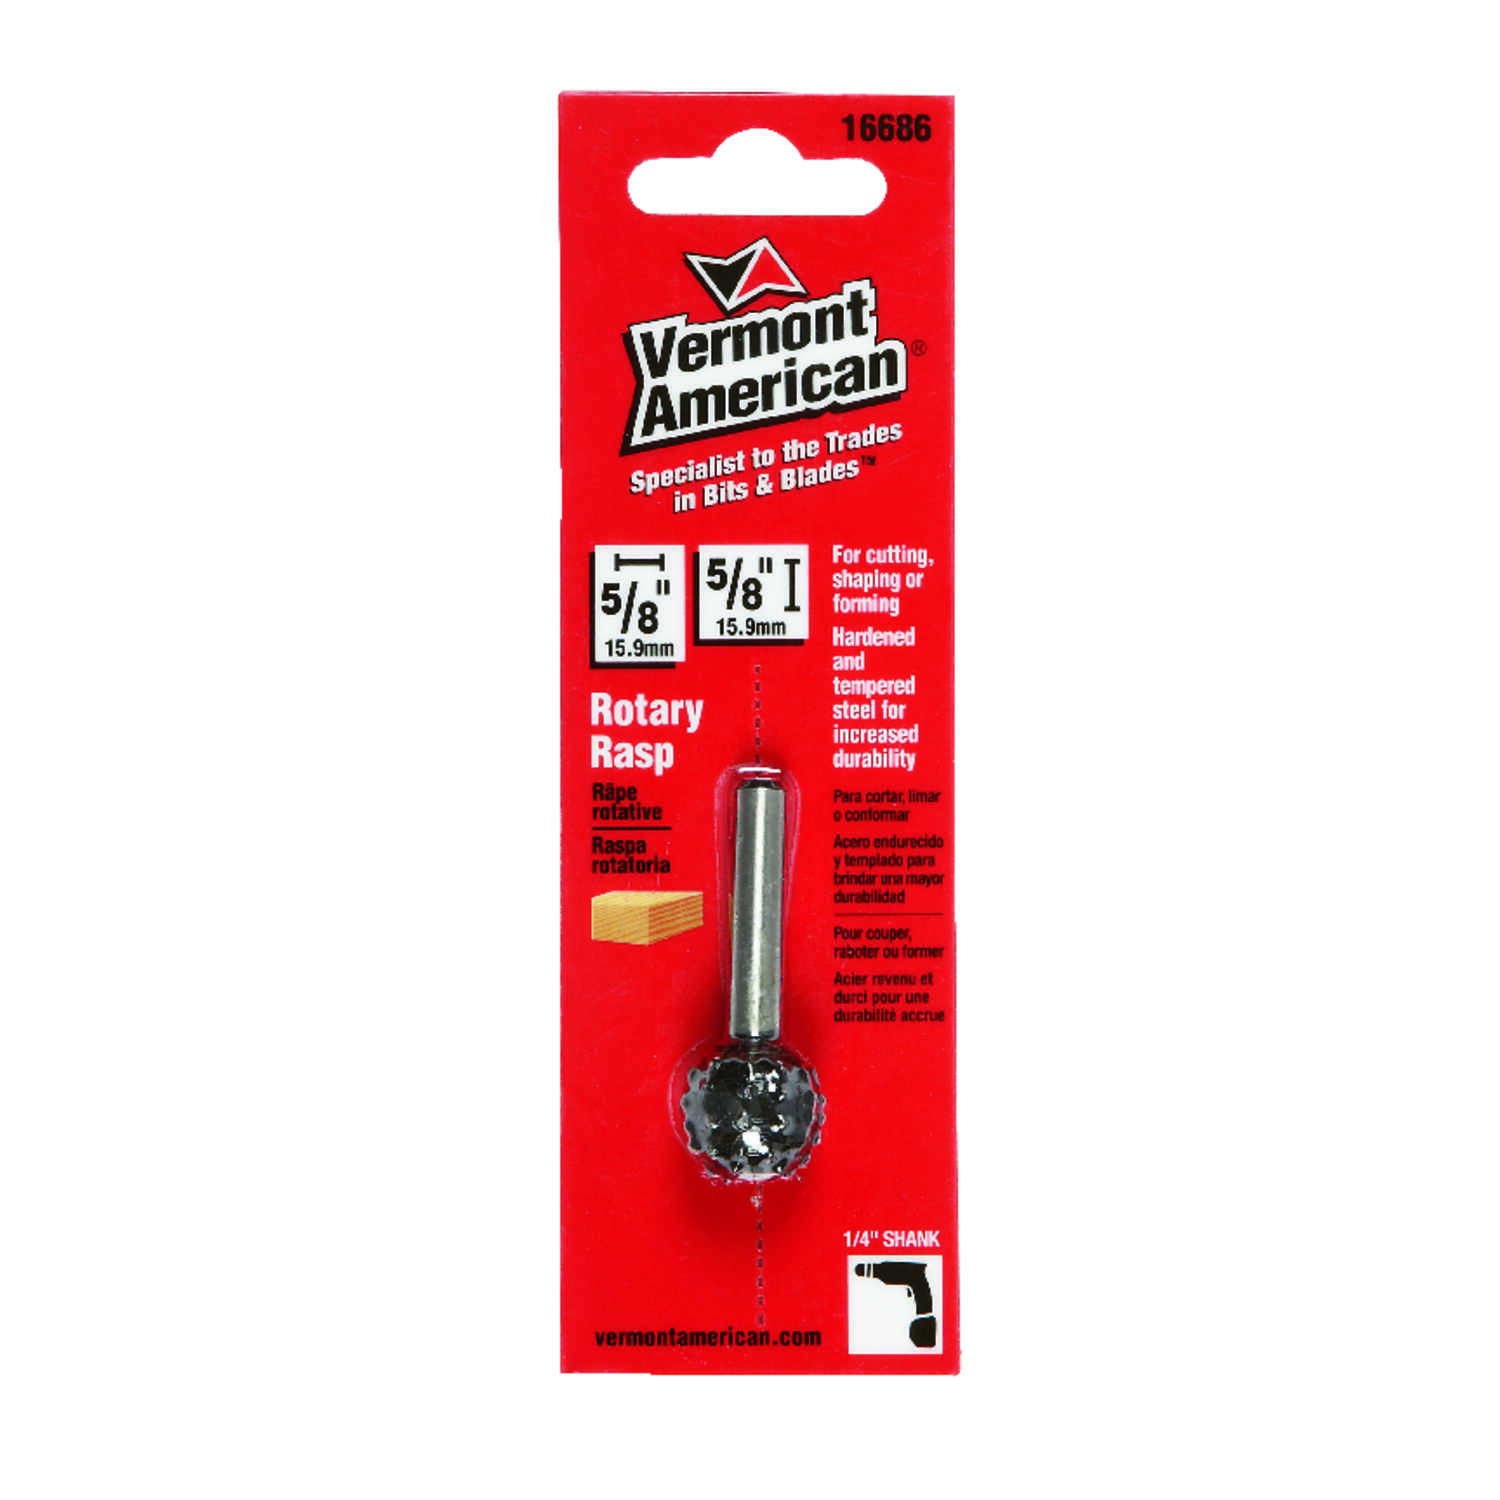 Vermont American  1.77 in. L x 0.625 in. L x 5/8 in. Dia. American  Ball  Single Cut  Rotary Rasp  1